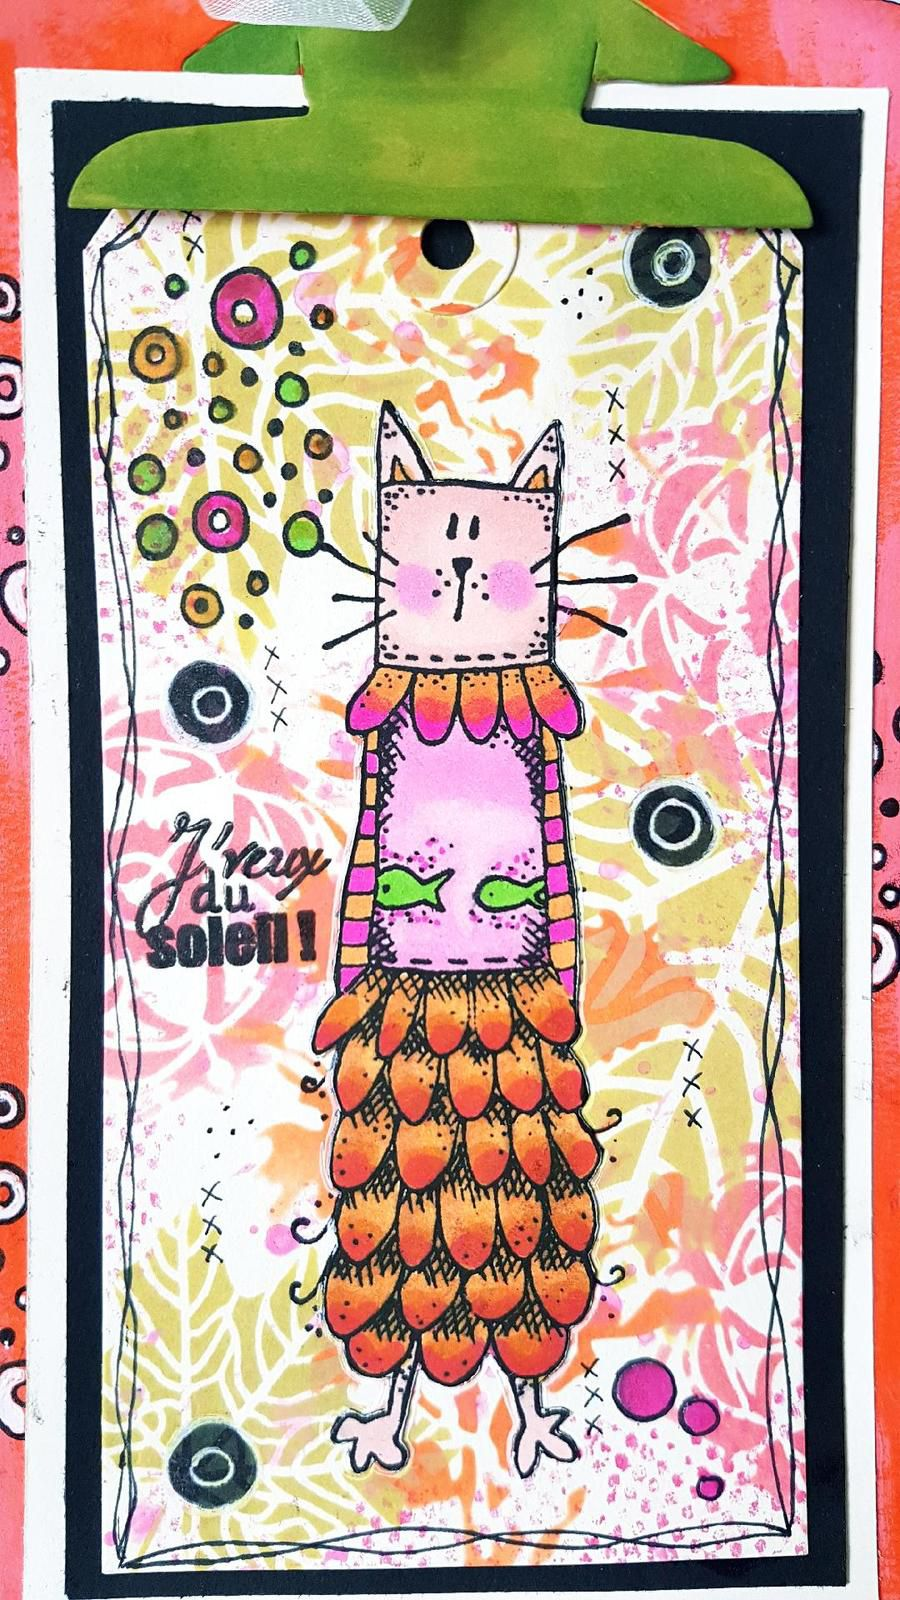 CHAT MIXED MEDIA